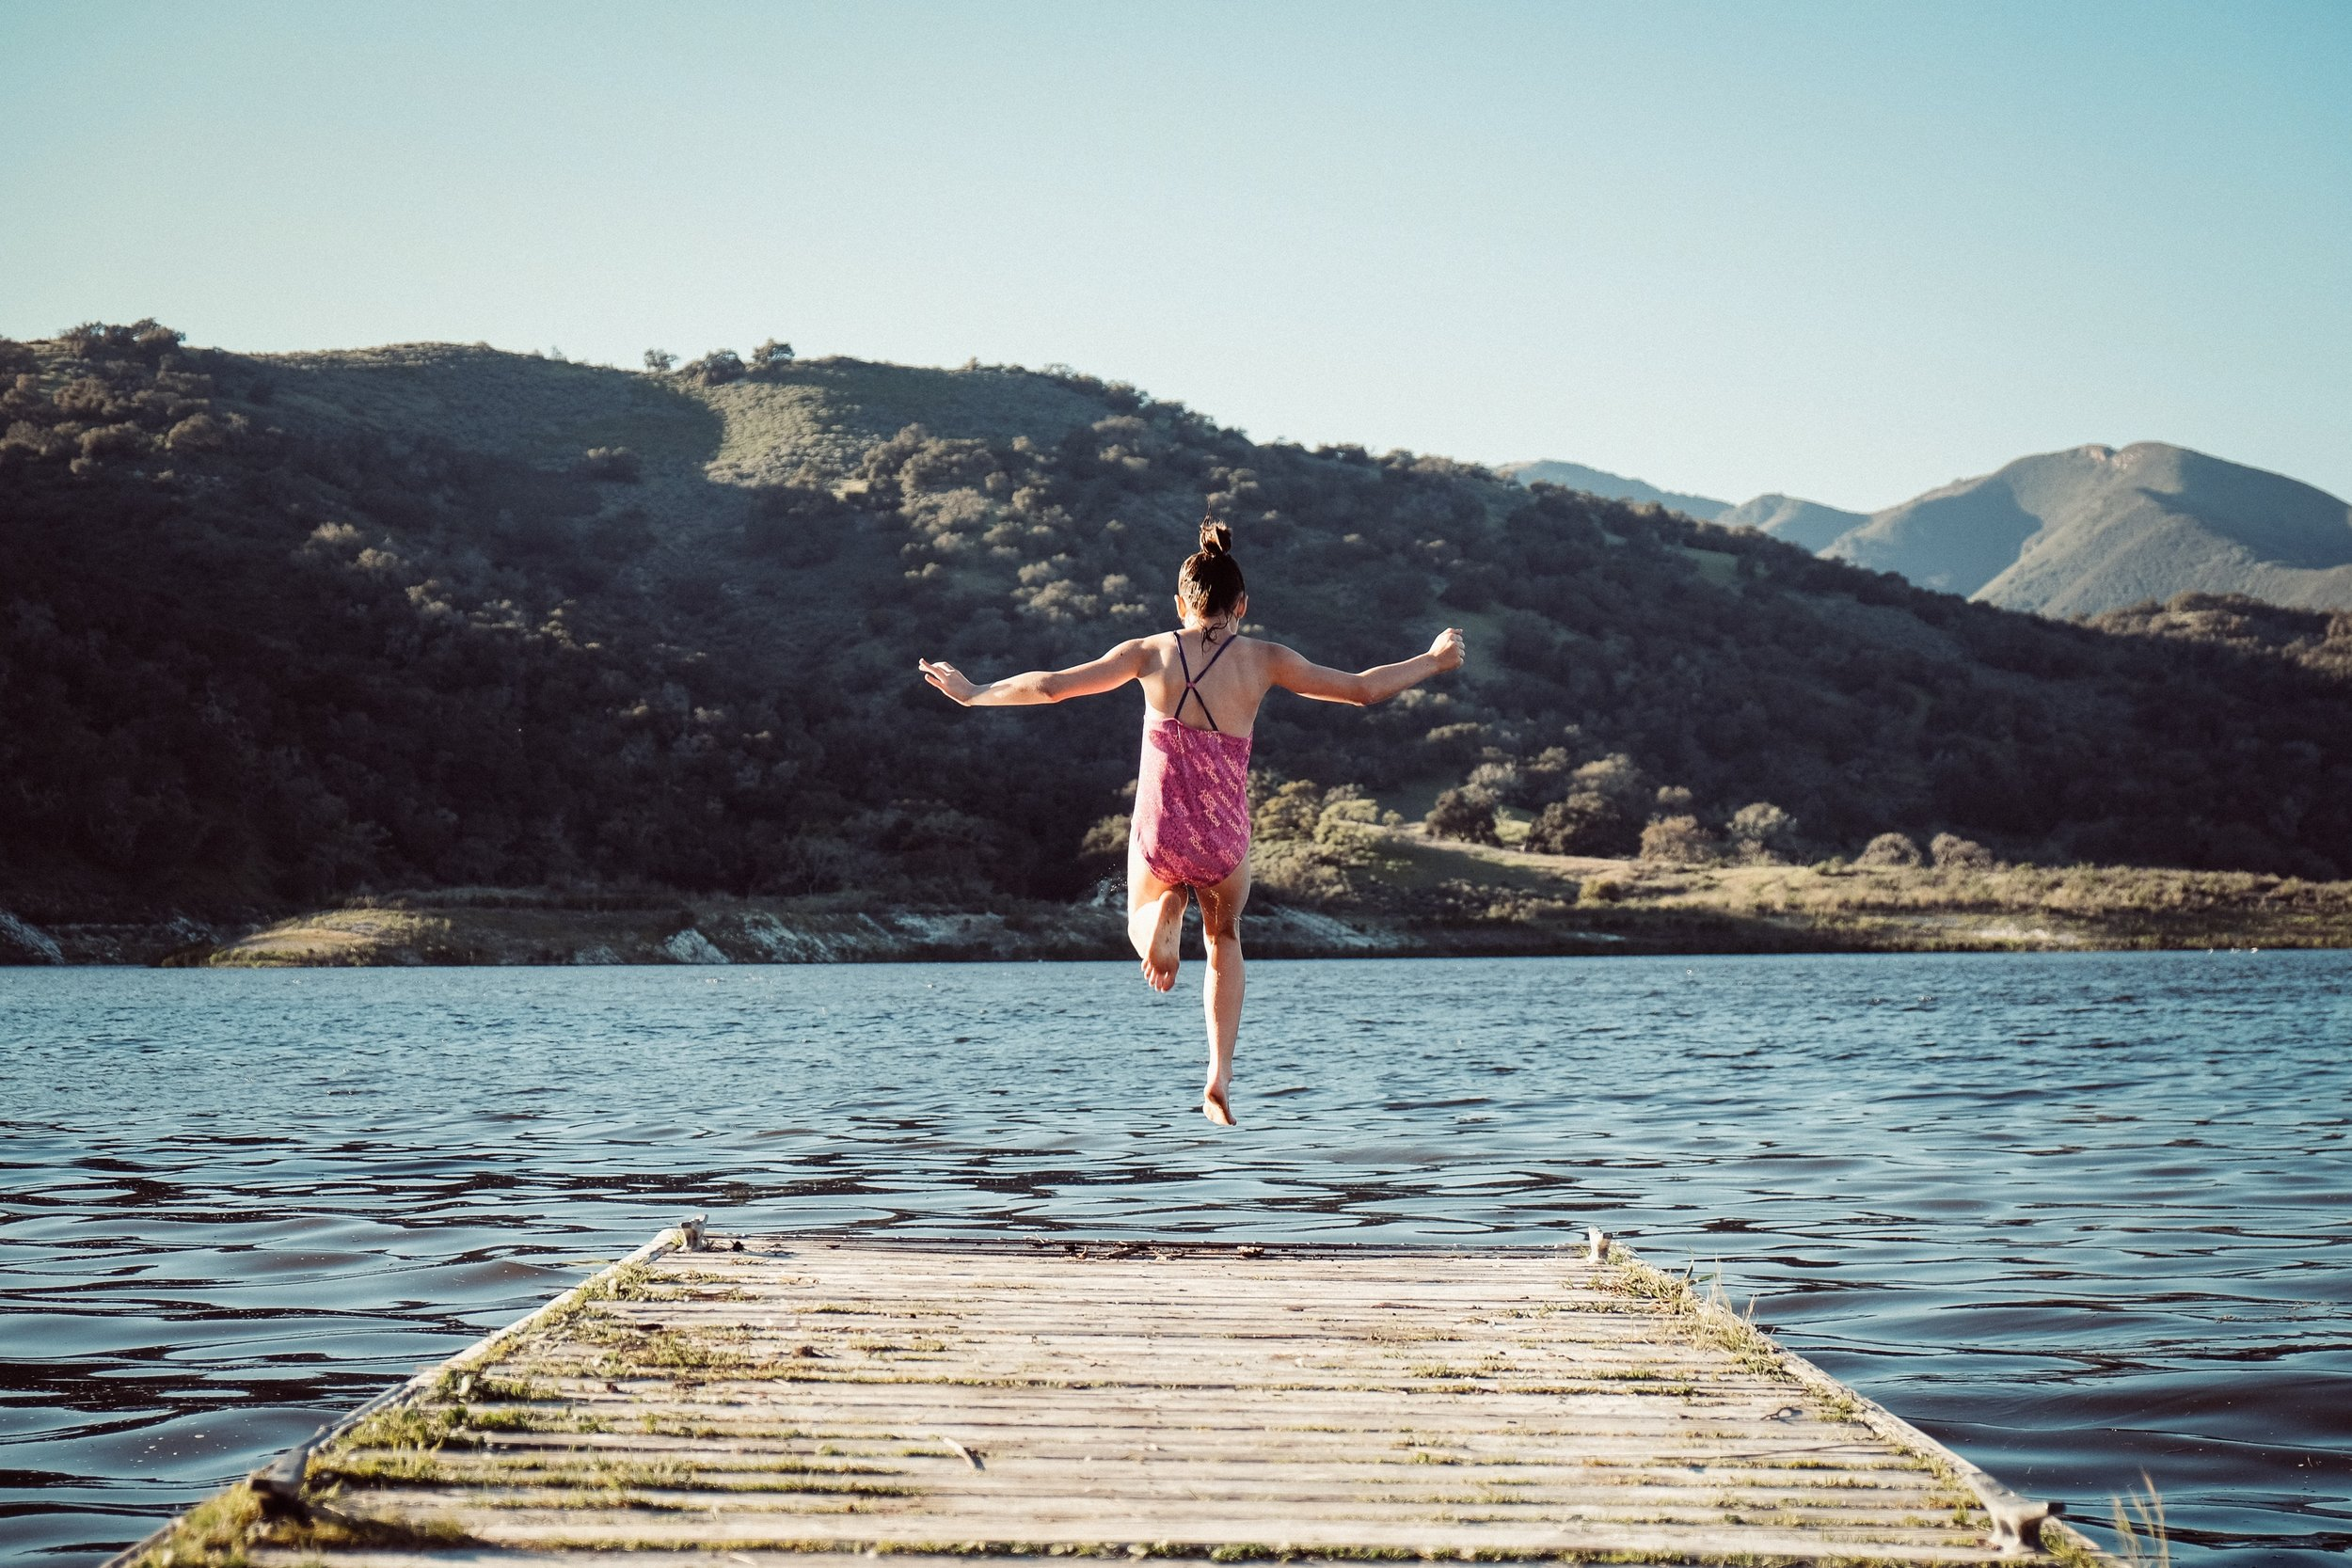 Leaps of faith are for kids - not for midlifers with mortgages, kids, egos or status within friendship groups